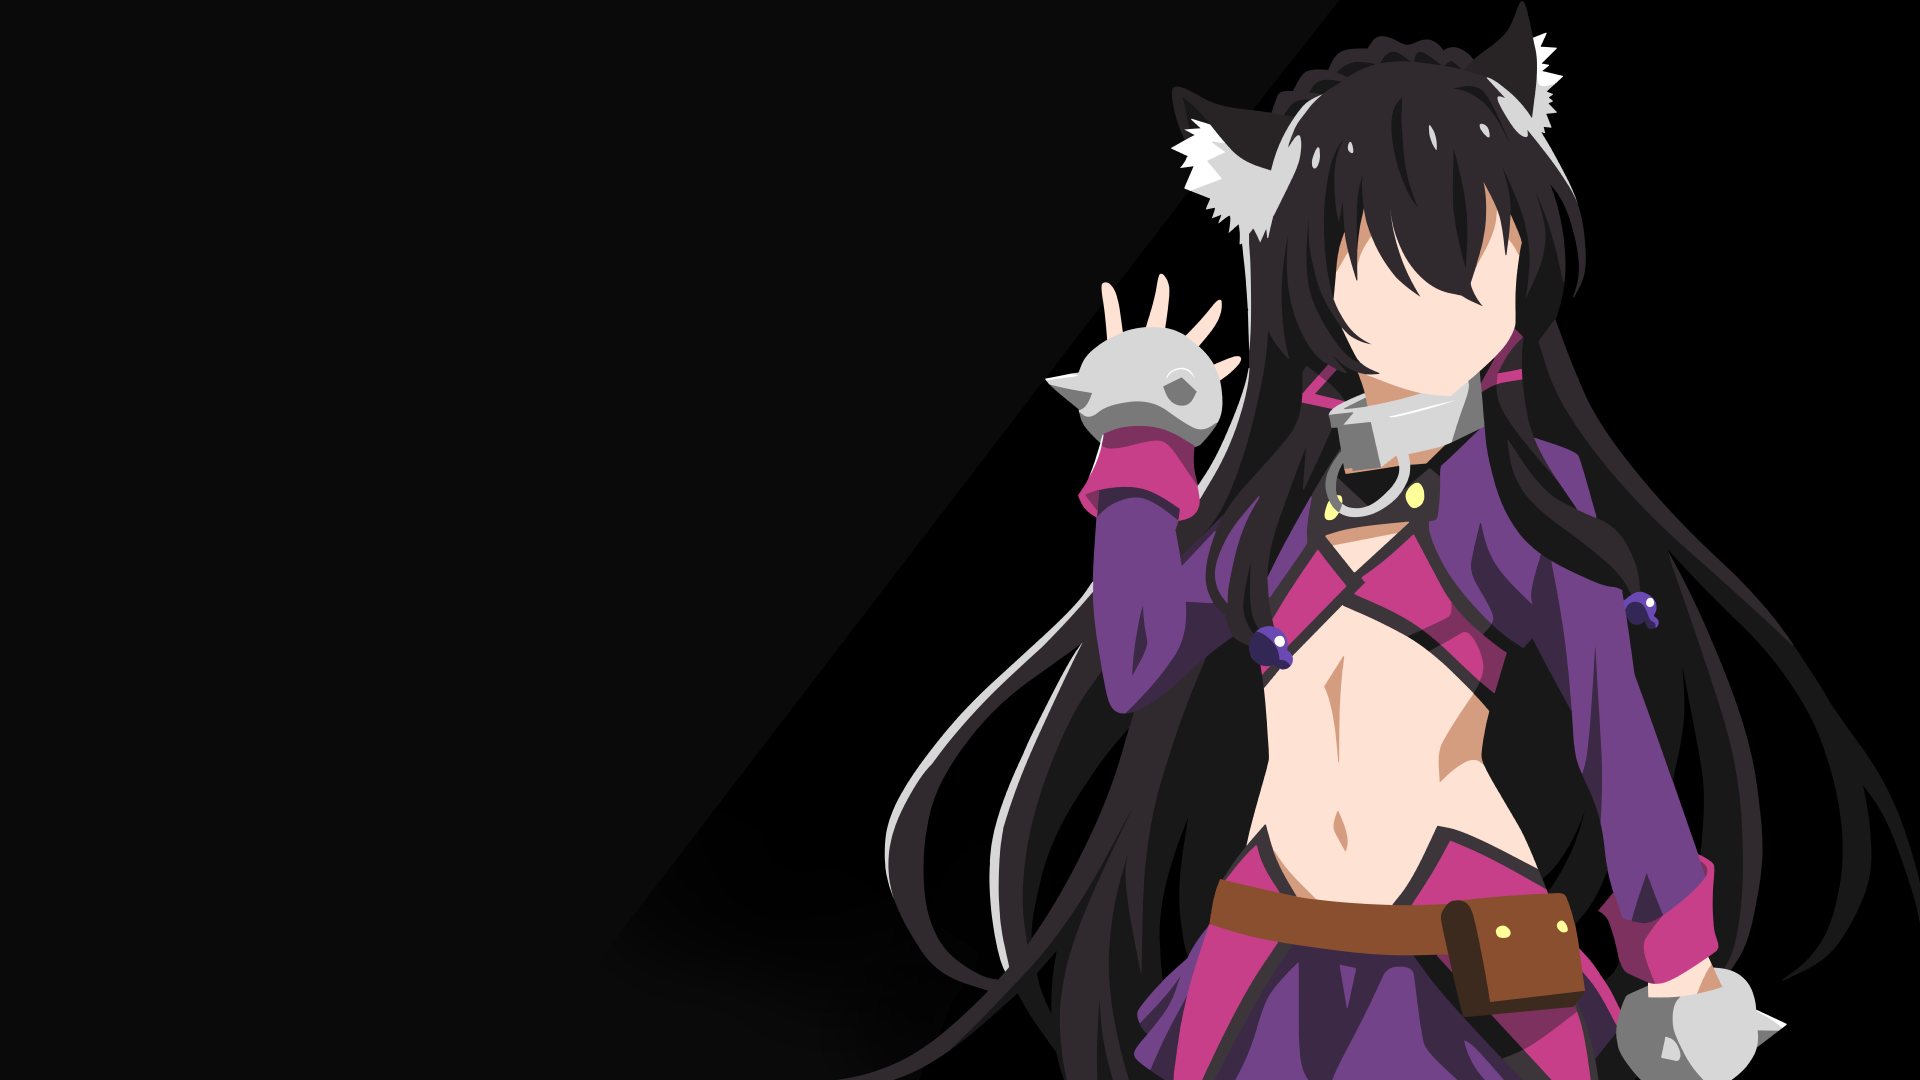 Rem How Not To Summon A Demon Lord Hd Wallpaper Background